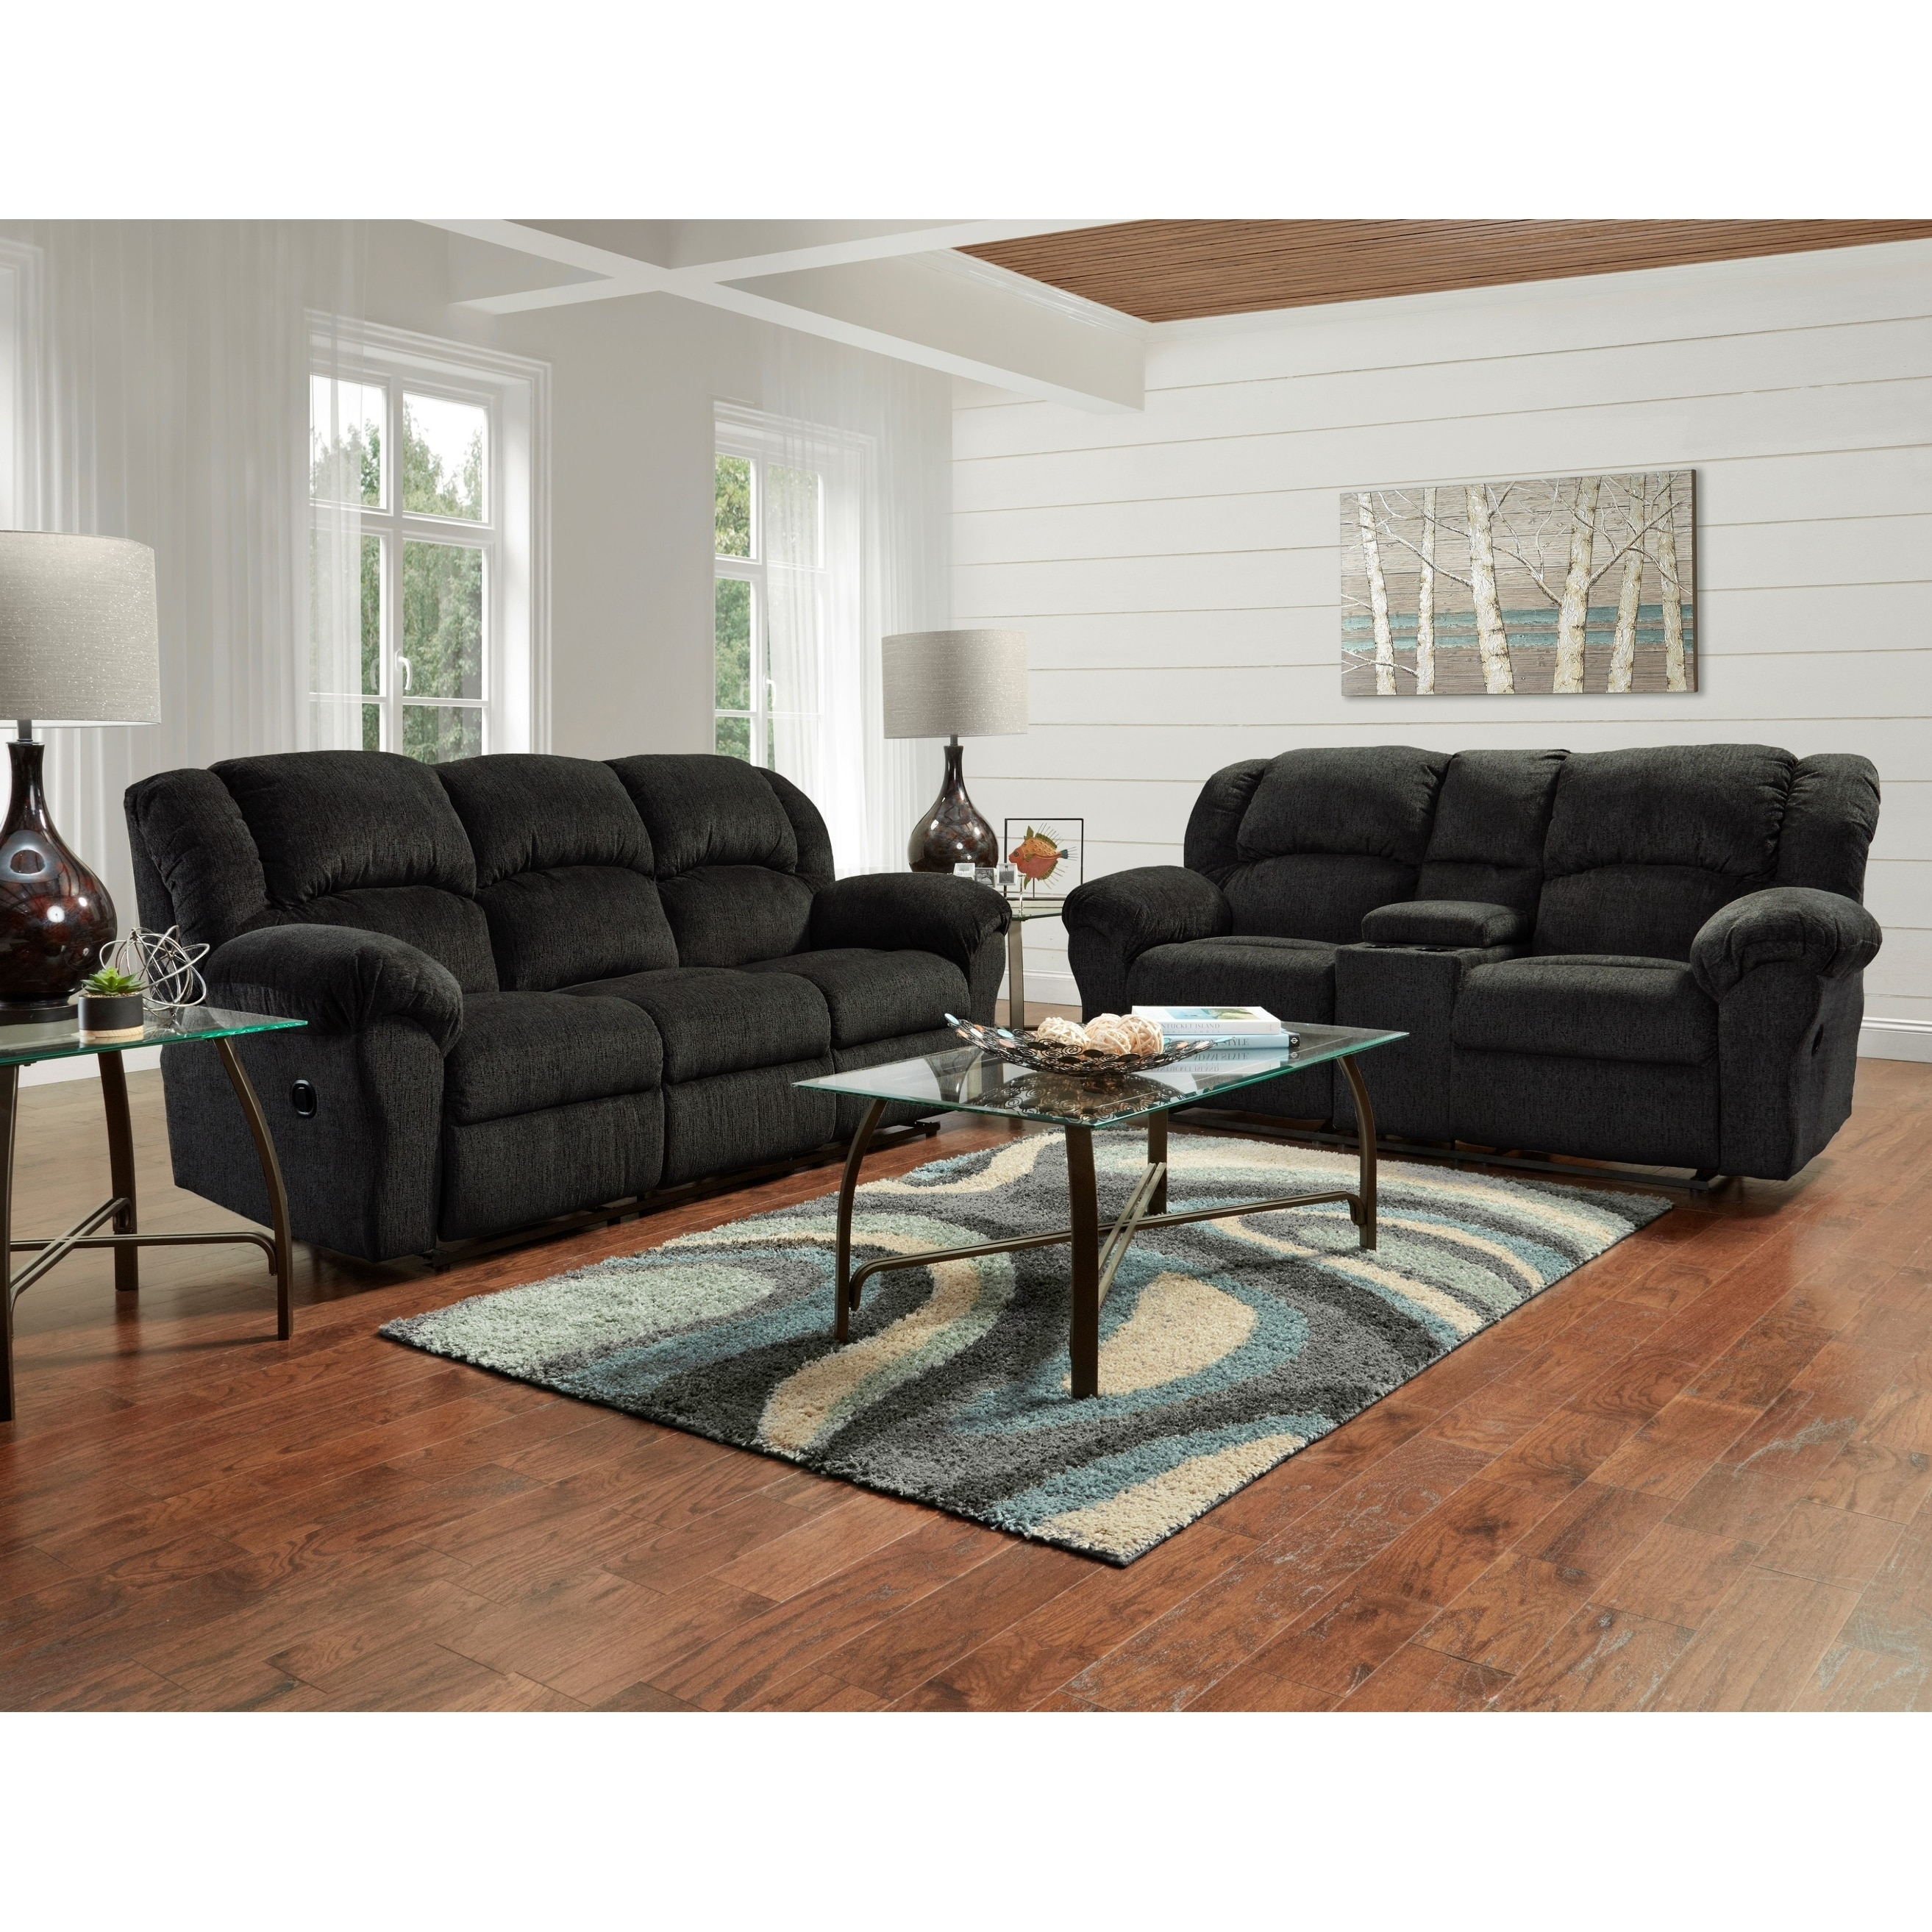 Dual Reclining Microfiber Sofa And Loveseat Set Allure Grey On Sale Overstock 25572333